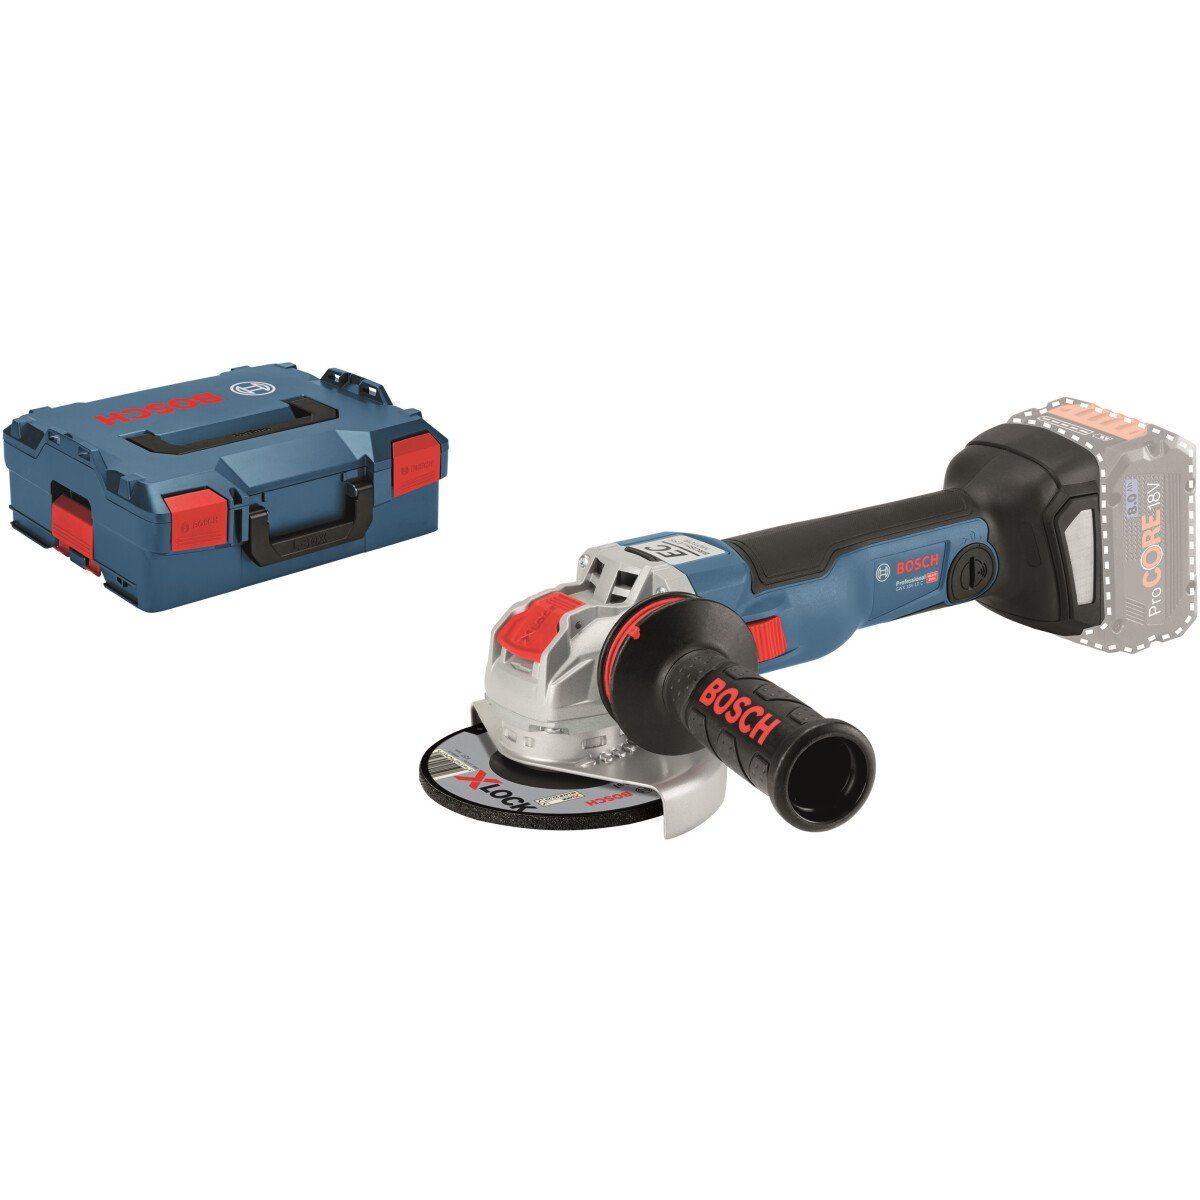 Bosch GWX 18V-10 SC Body Only 18v X-LOCK Connected 125mm Angle Grinder with user interface in L-Boxx